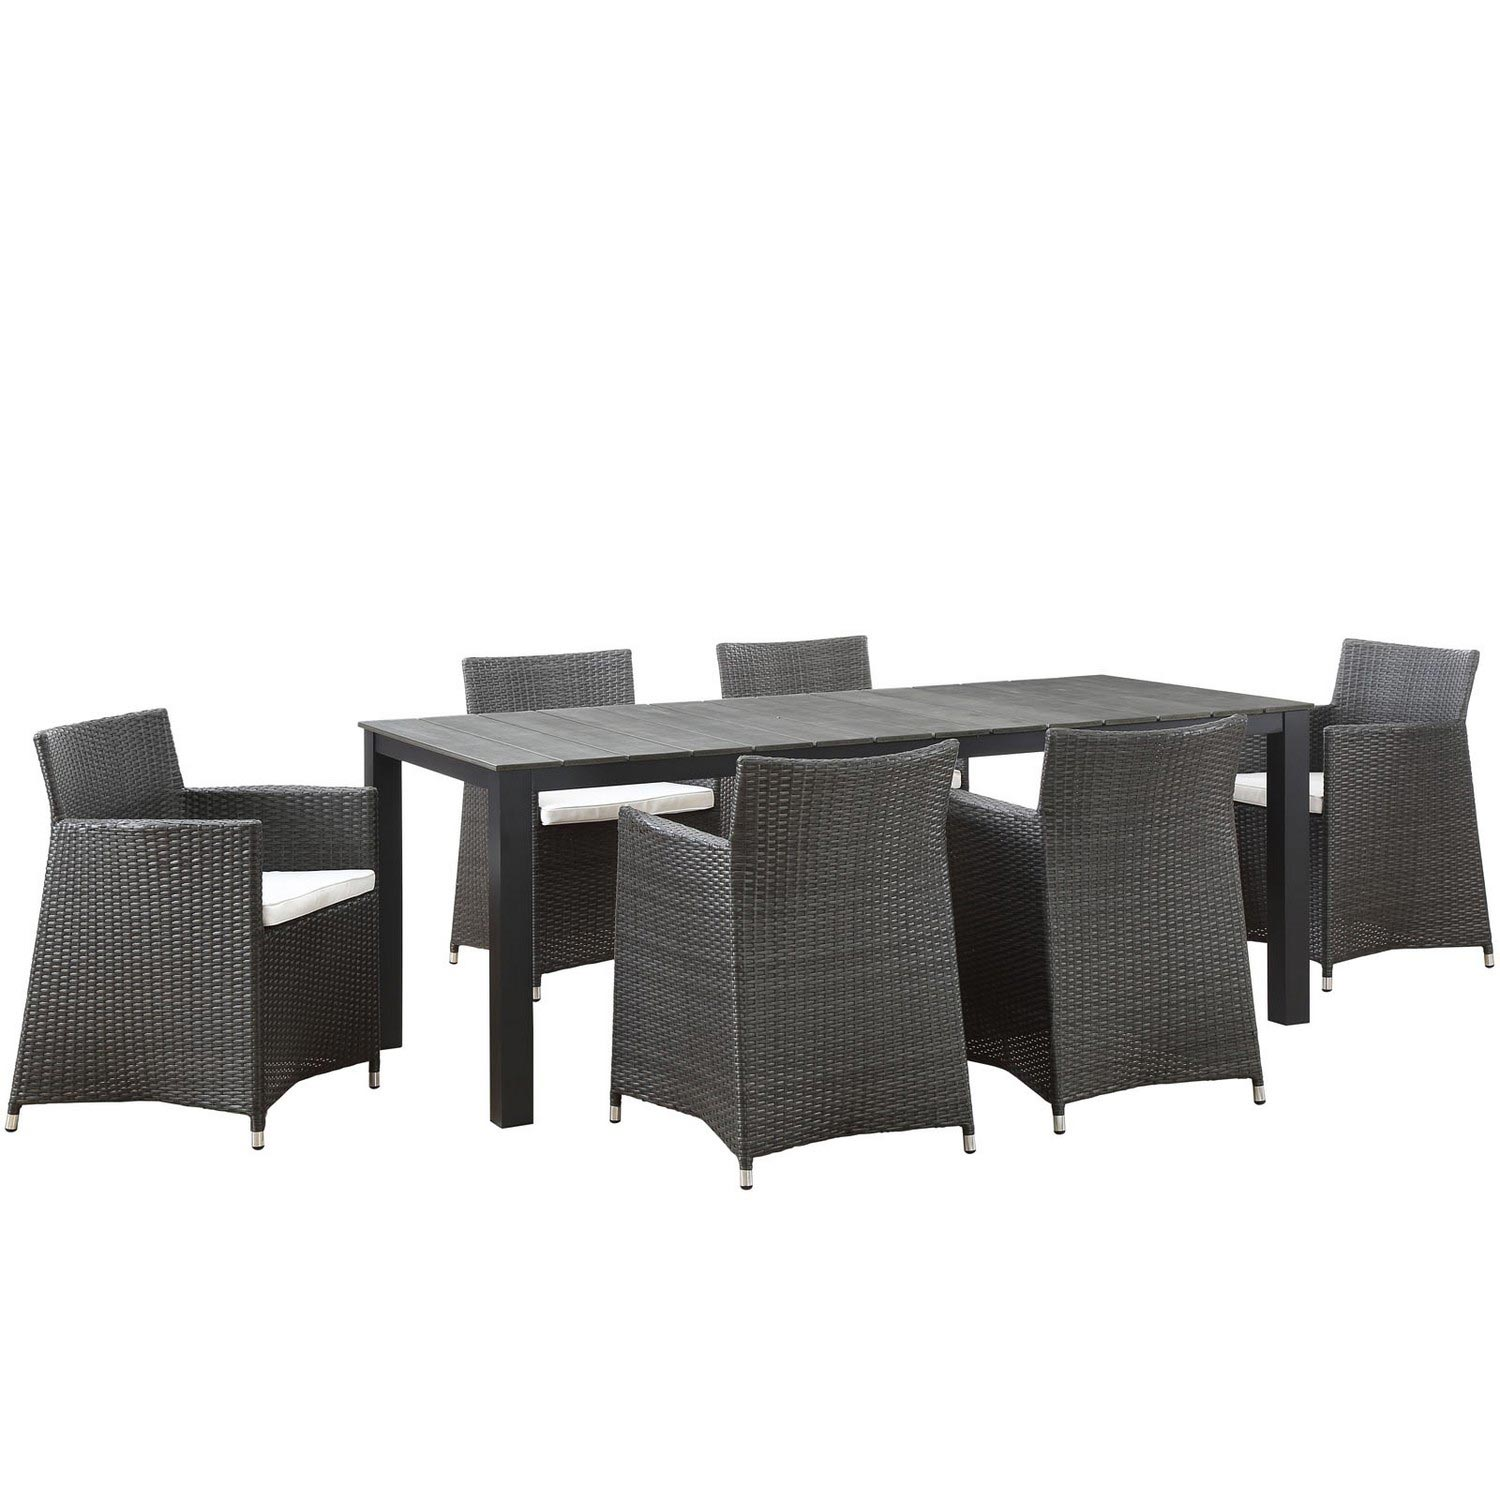 Modway Junction 7 Piece Outdoor Patio Dining Set - Brown/White